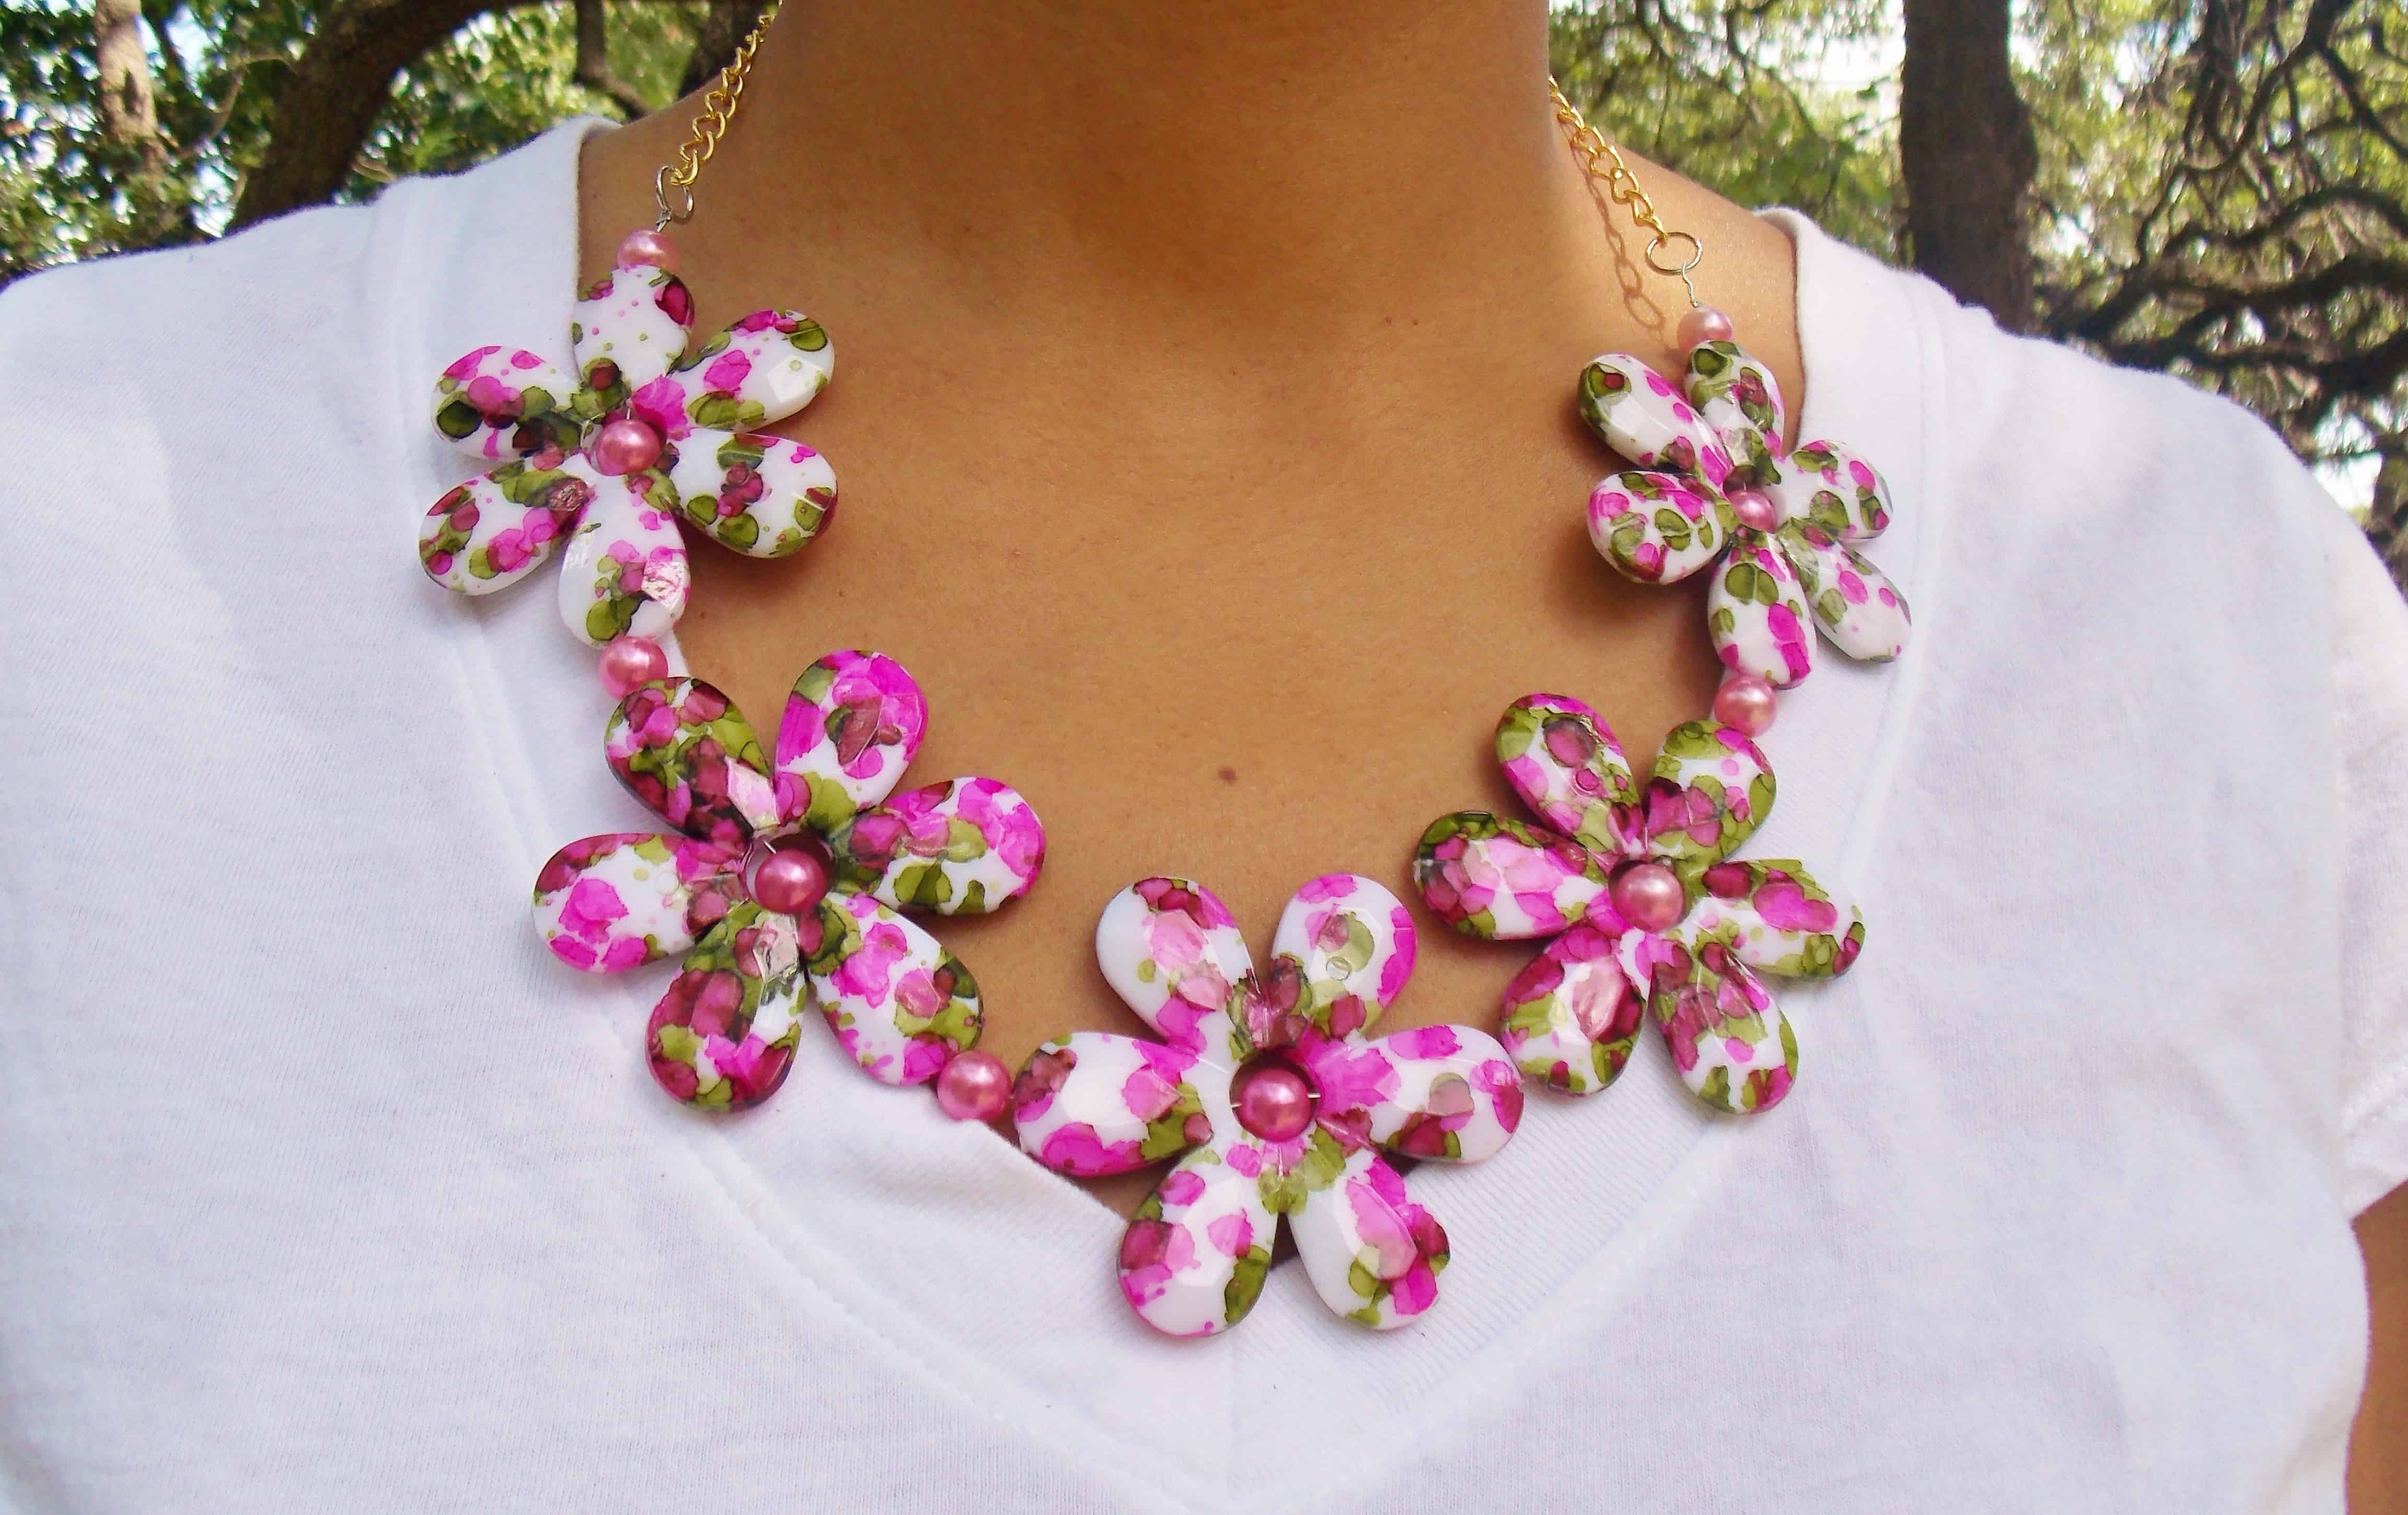 Fabric and pearl clower chain necklace